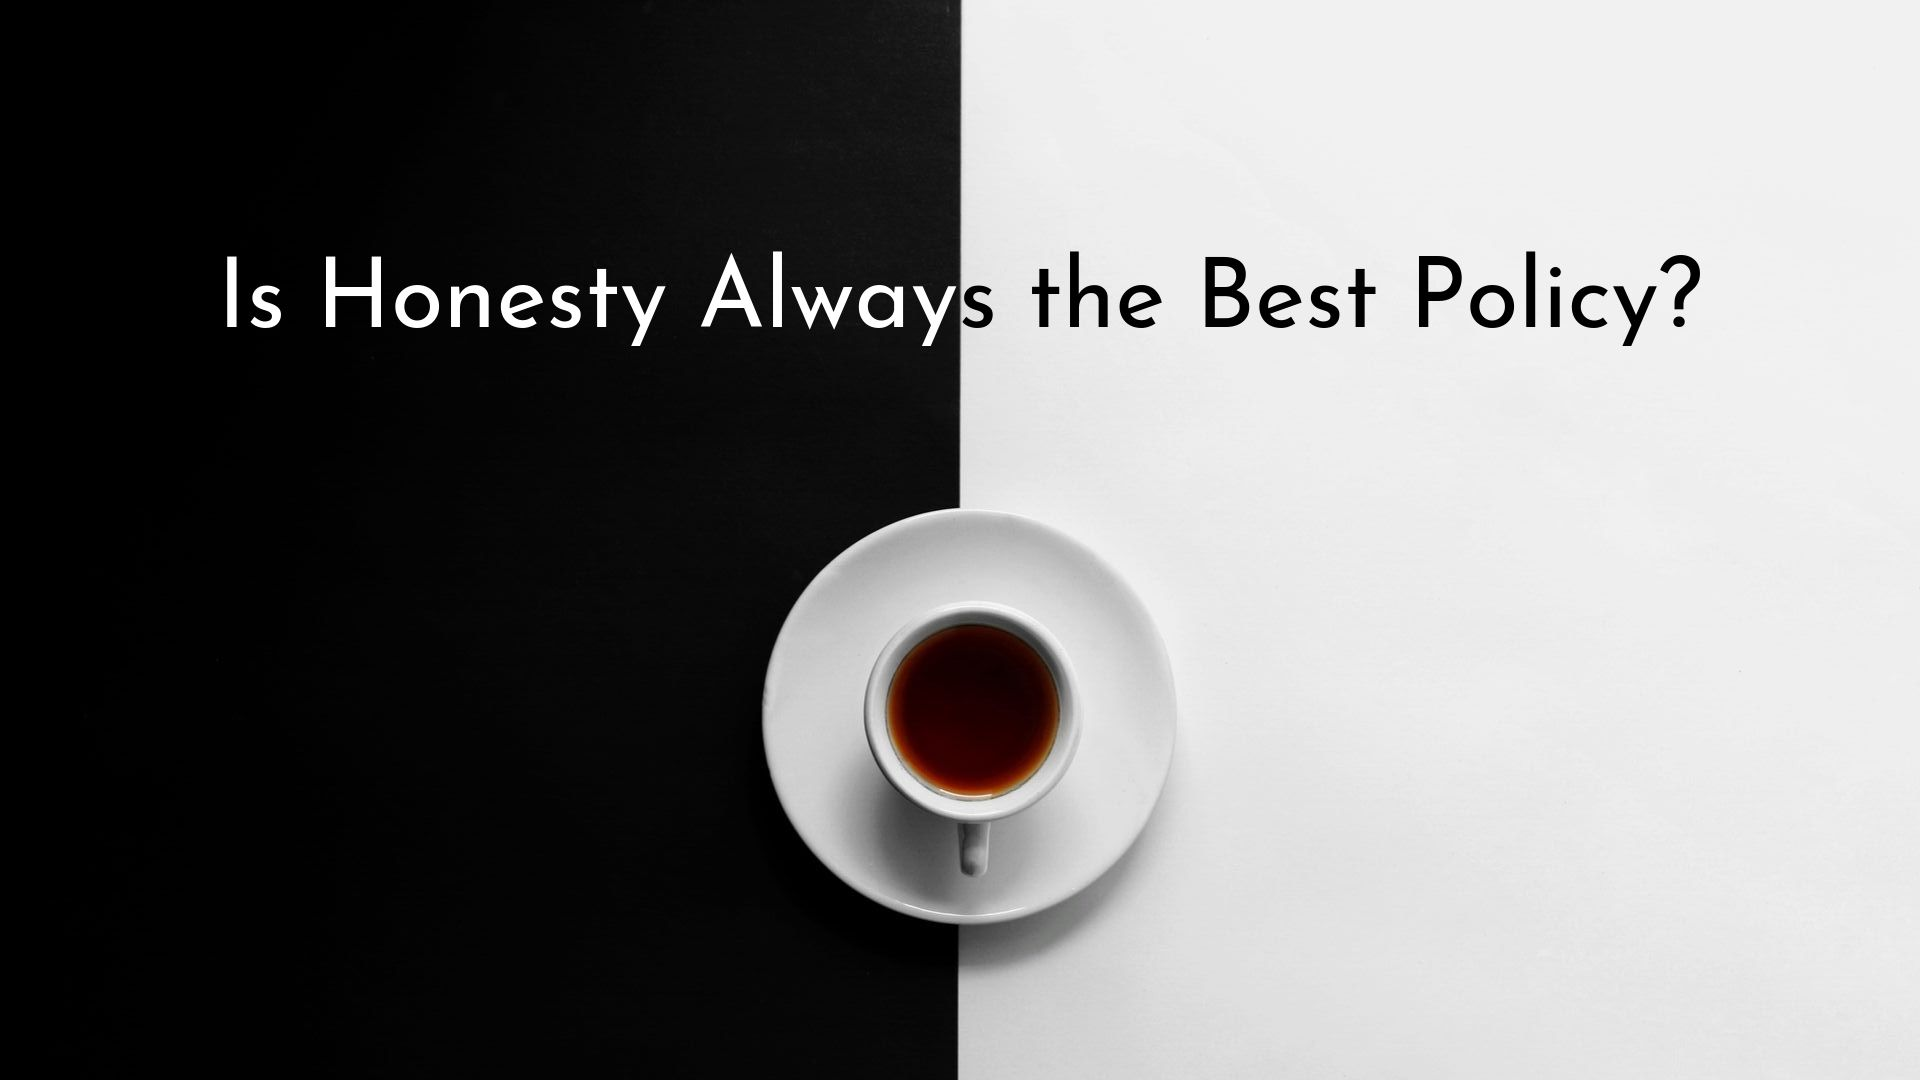 banner-is--honesty-always-the-best-policy-01.jpg